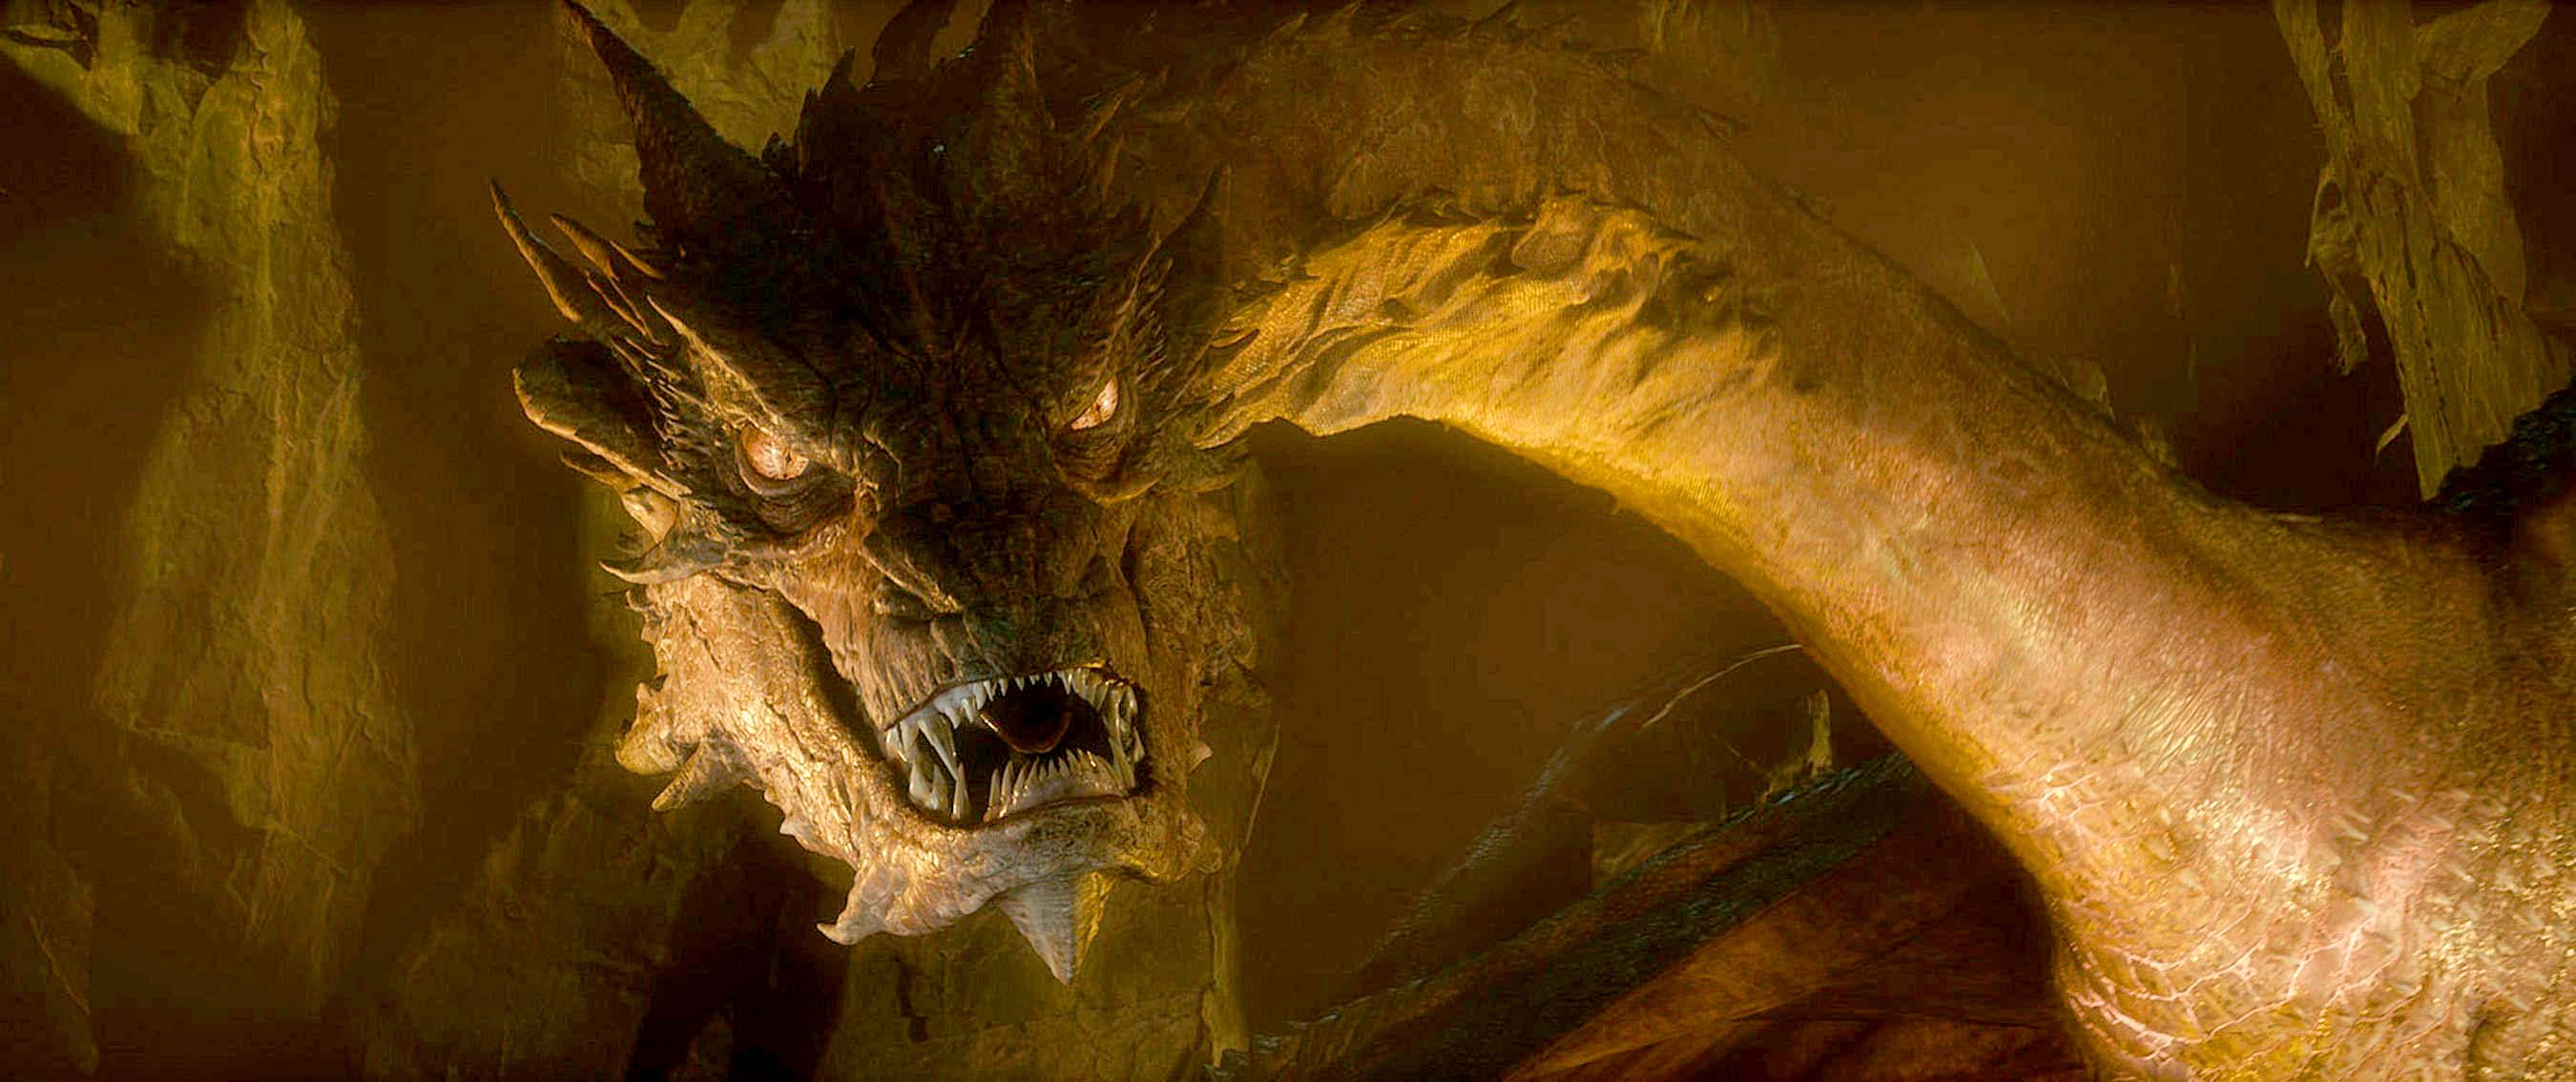 The Hobbit: The Desolation of Smaug Review: A Long Walk to Nowhere